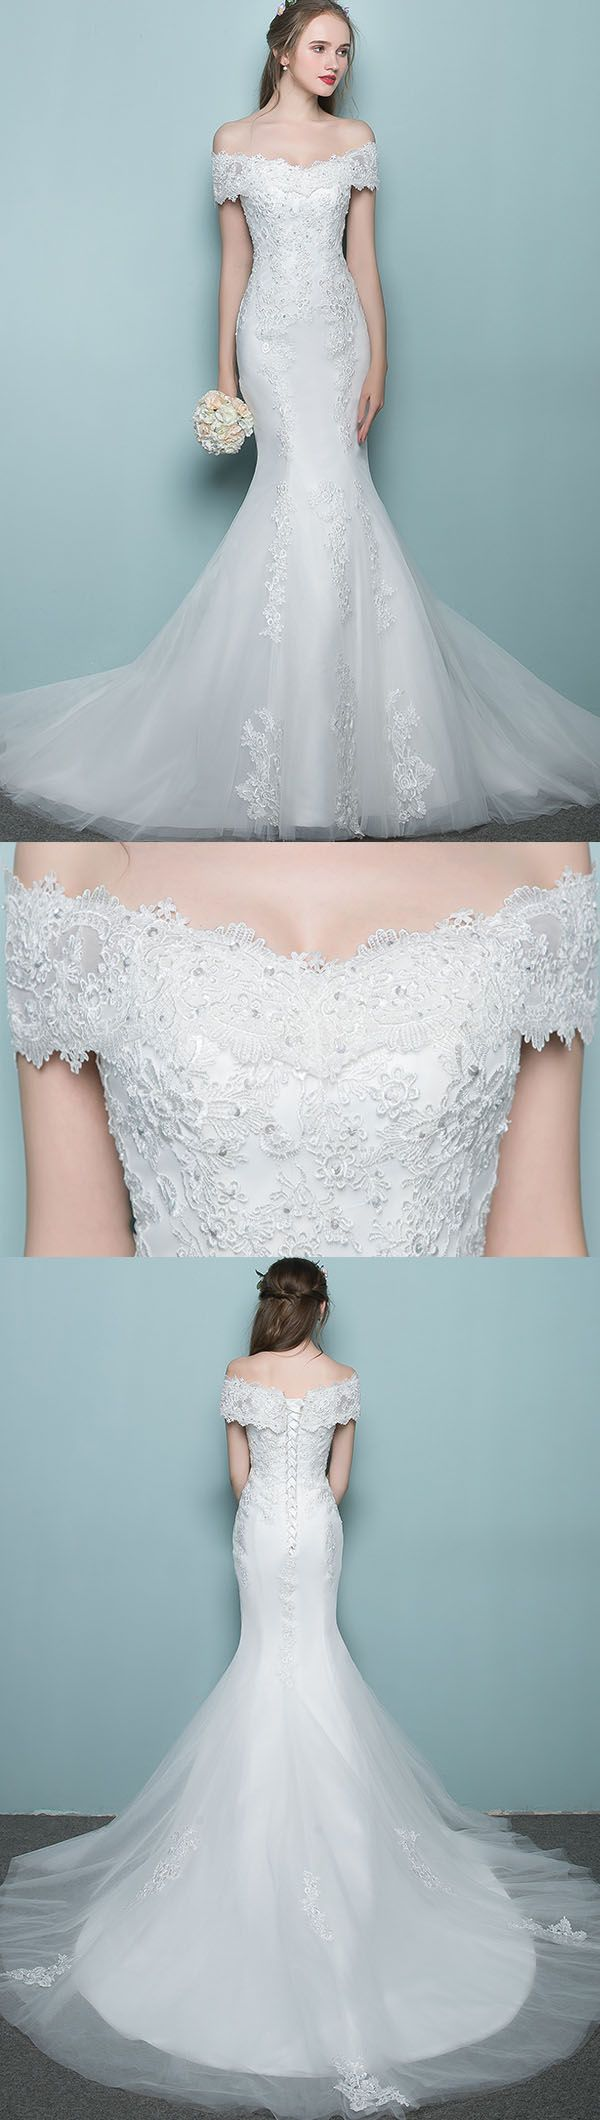 978 best wedding dresses images on Pinterest | Short wedding gowns ...